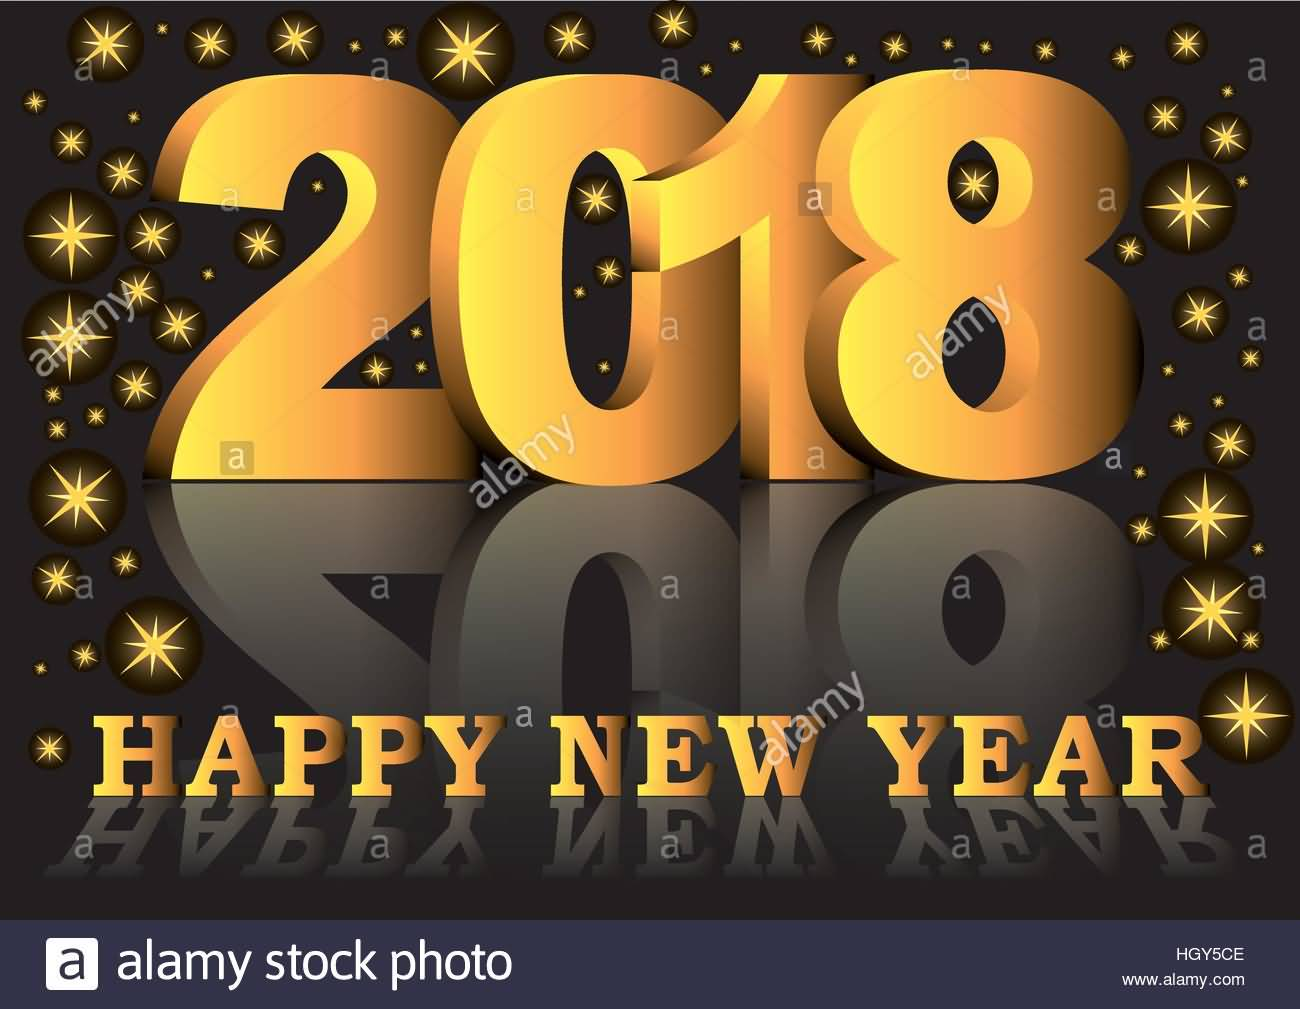 New Year 2018 Cards Wishes Image Picture Photo Wallpaper Greetings 07